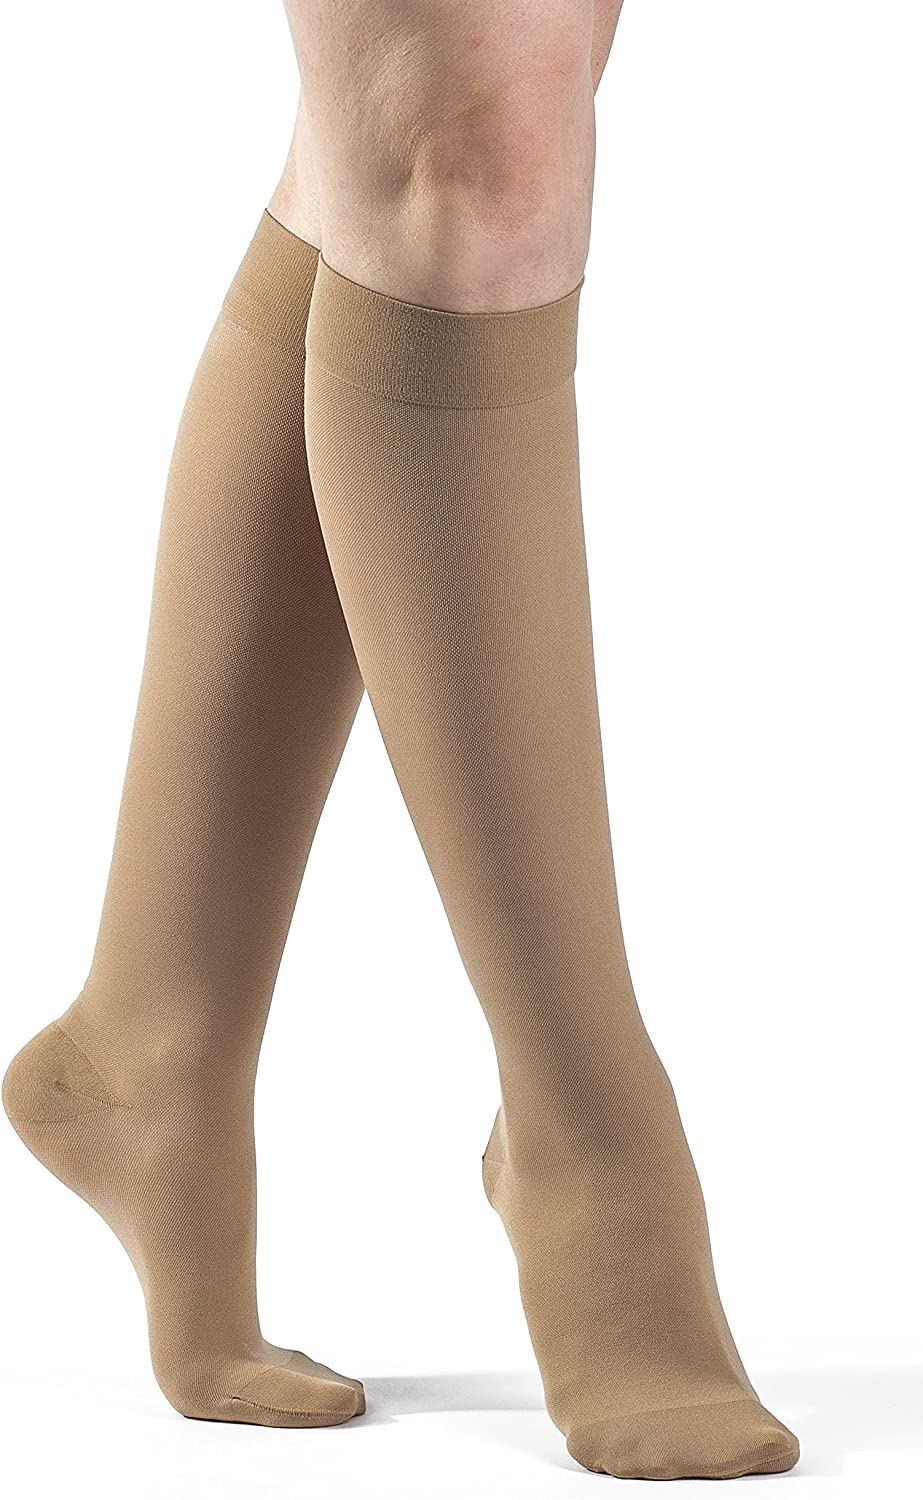 SIGVARIS Women's Select Comfort 860 Closed Toe Calf High Compression Hose 2030mmHg